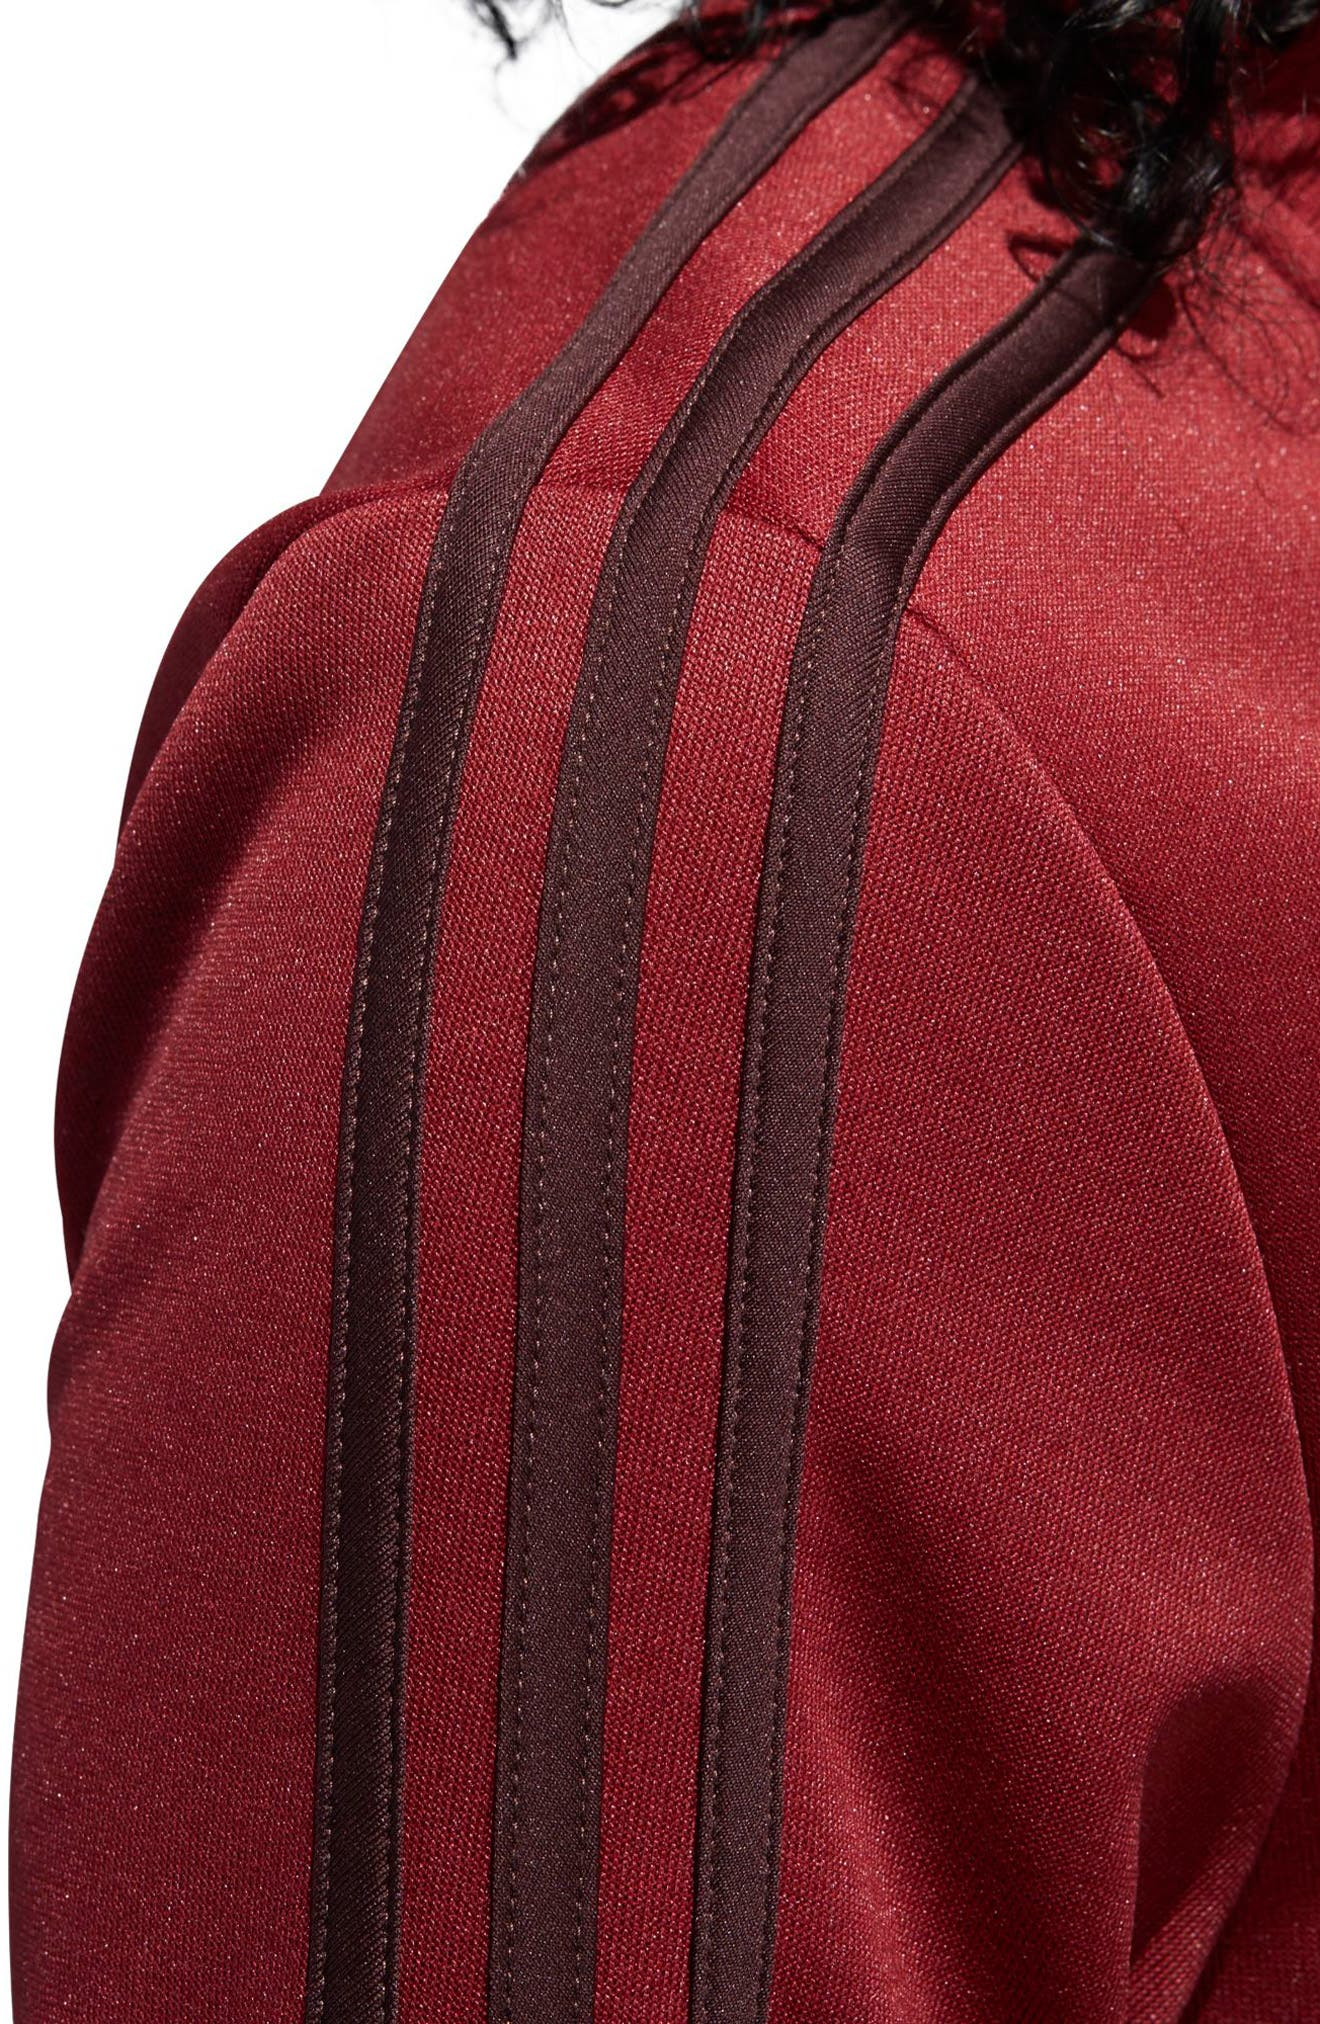 Snap Hem Track Jacket,                             Alternate thumbnail 6, color,                             NOBLE MAROON/ NIGHT RED